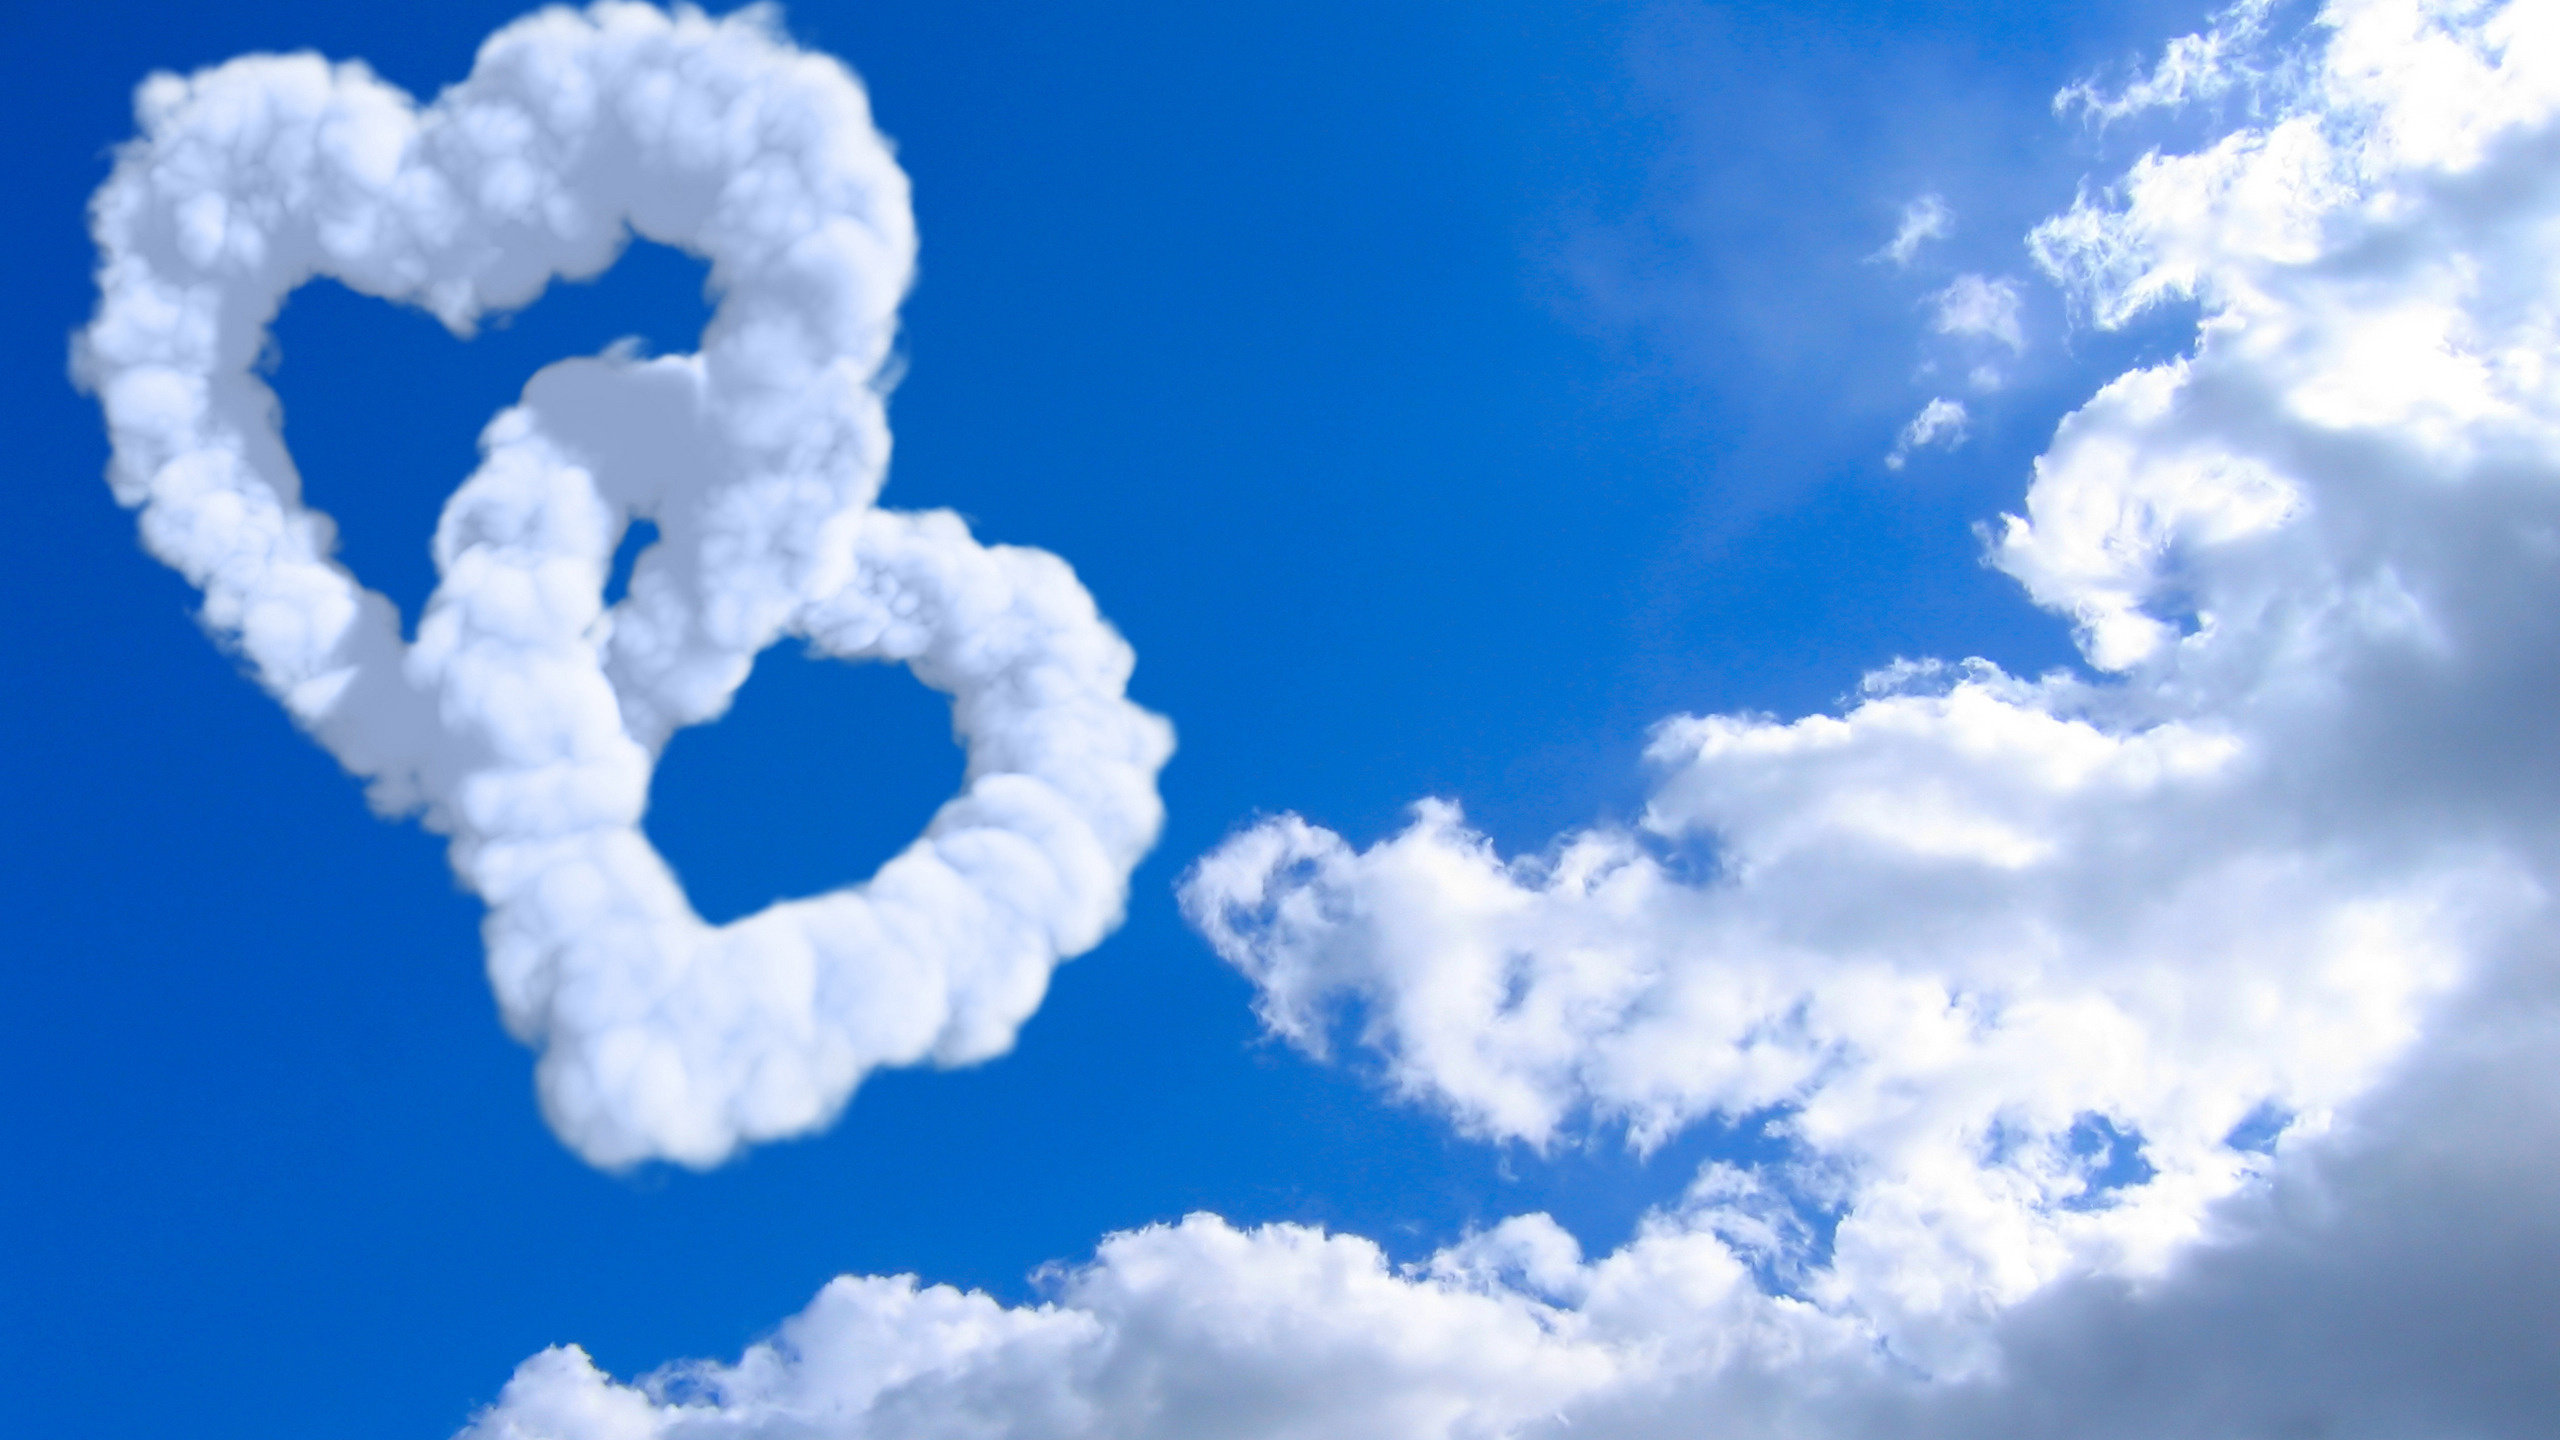 High Resolution Love Hd 2560x1440 Wallpaper Id 306324 For Pc